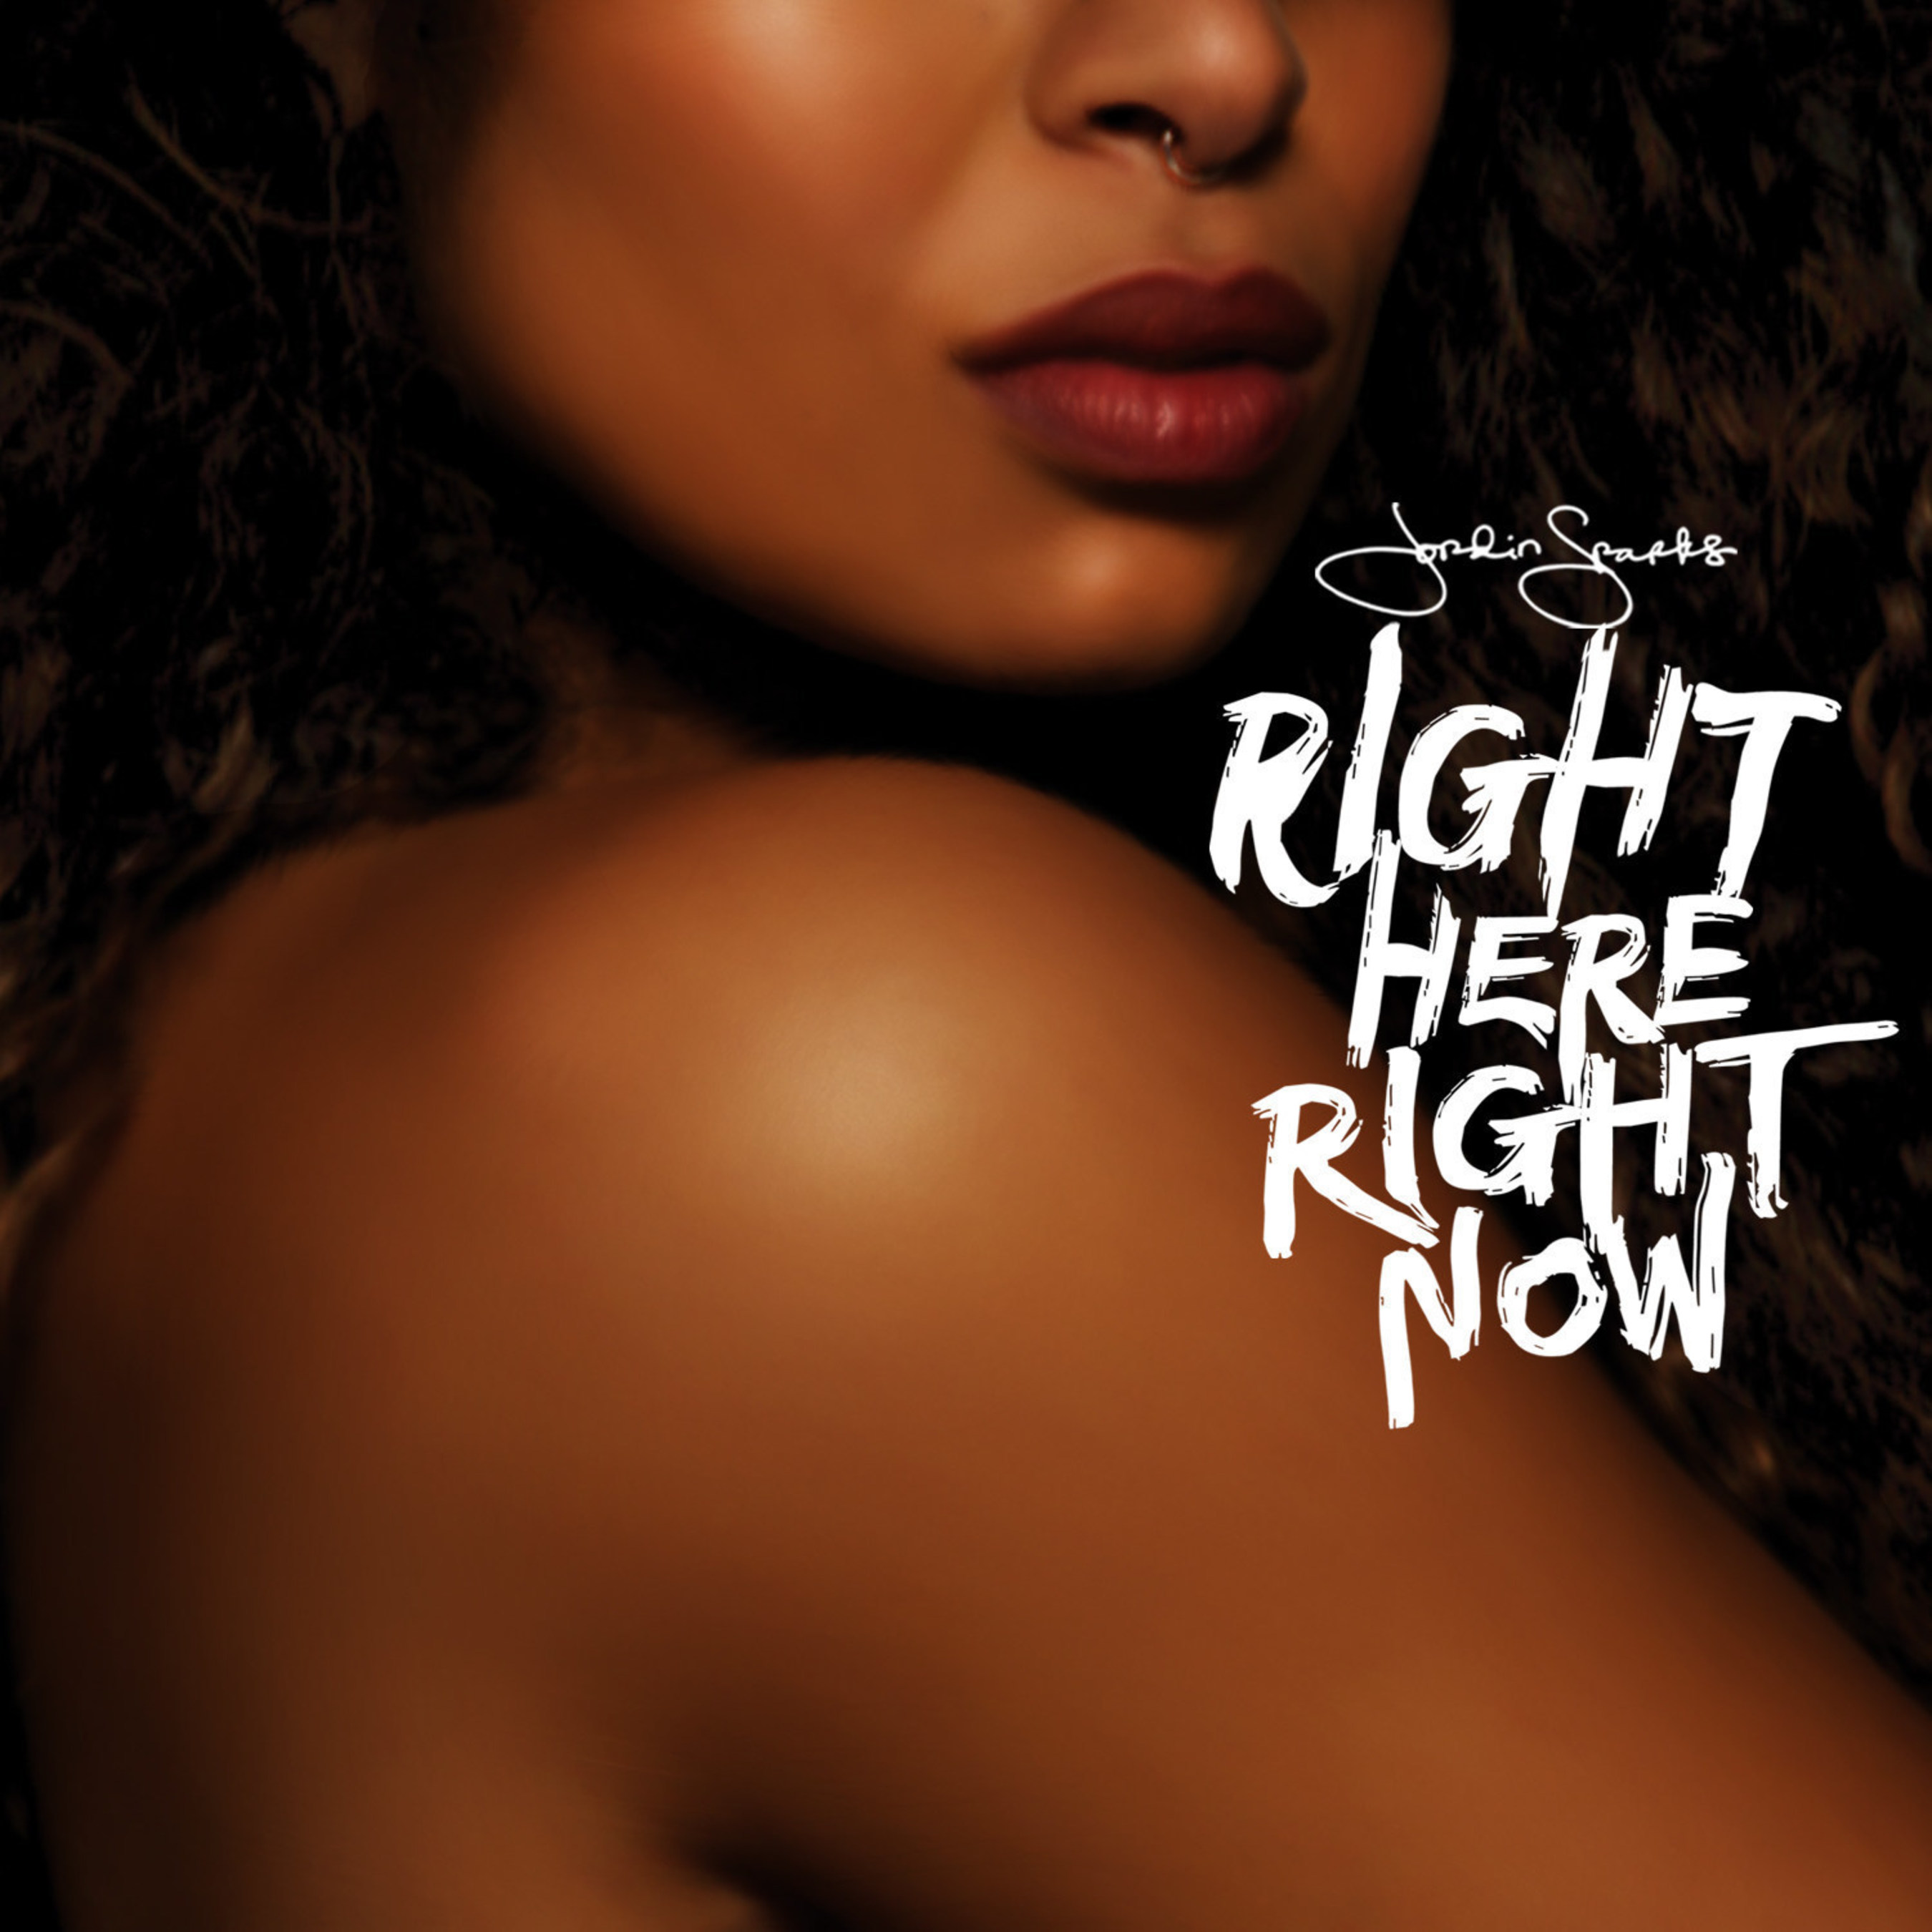 Jordin Sparks Partners With General Growth Properties To Promote Release Of Her New Album, Right Here Right Now